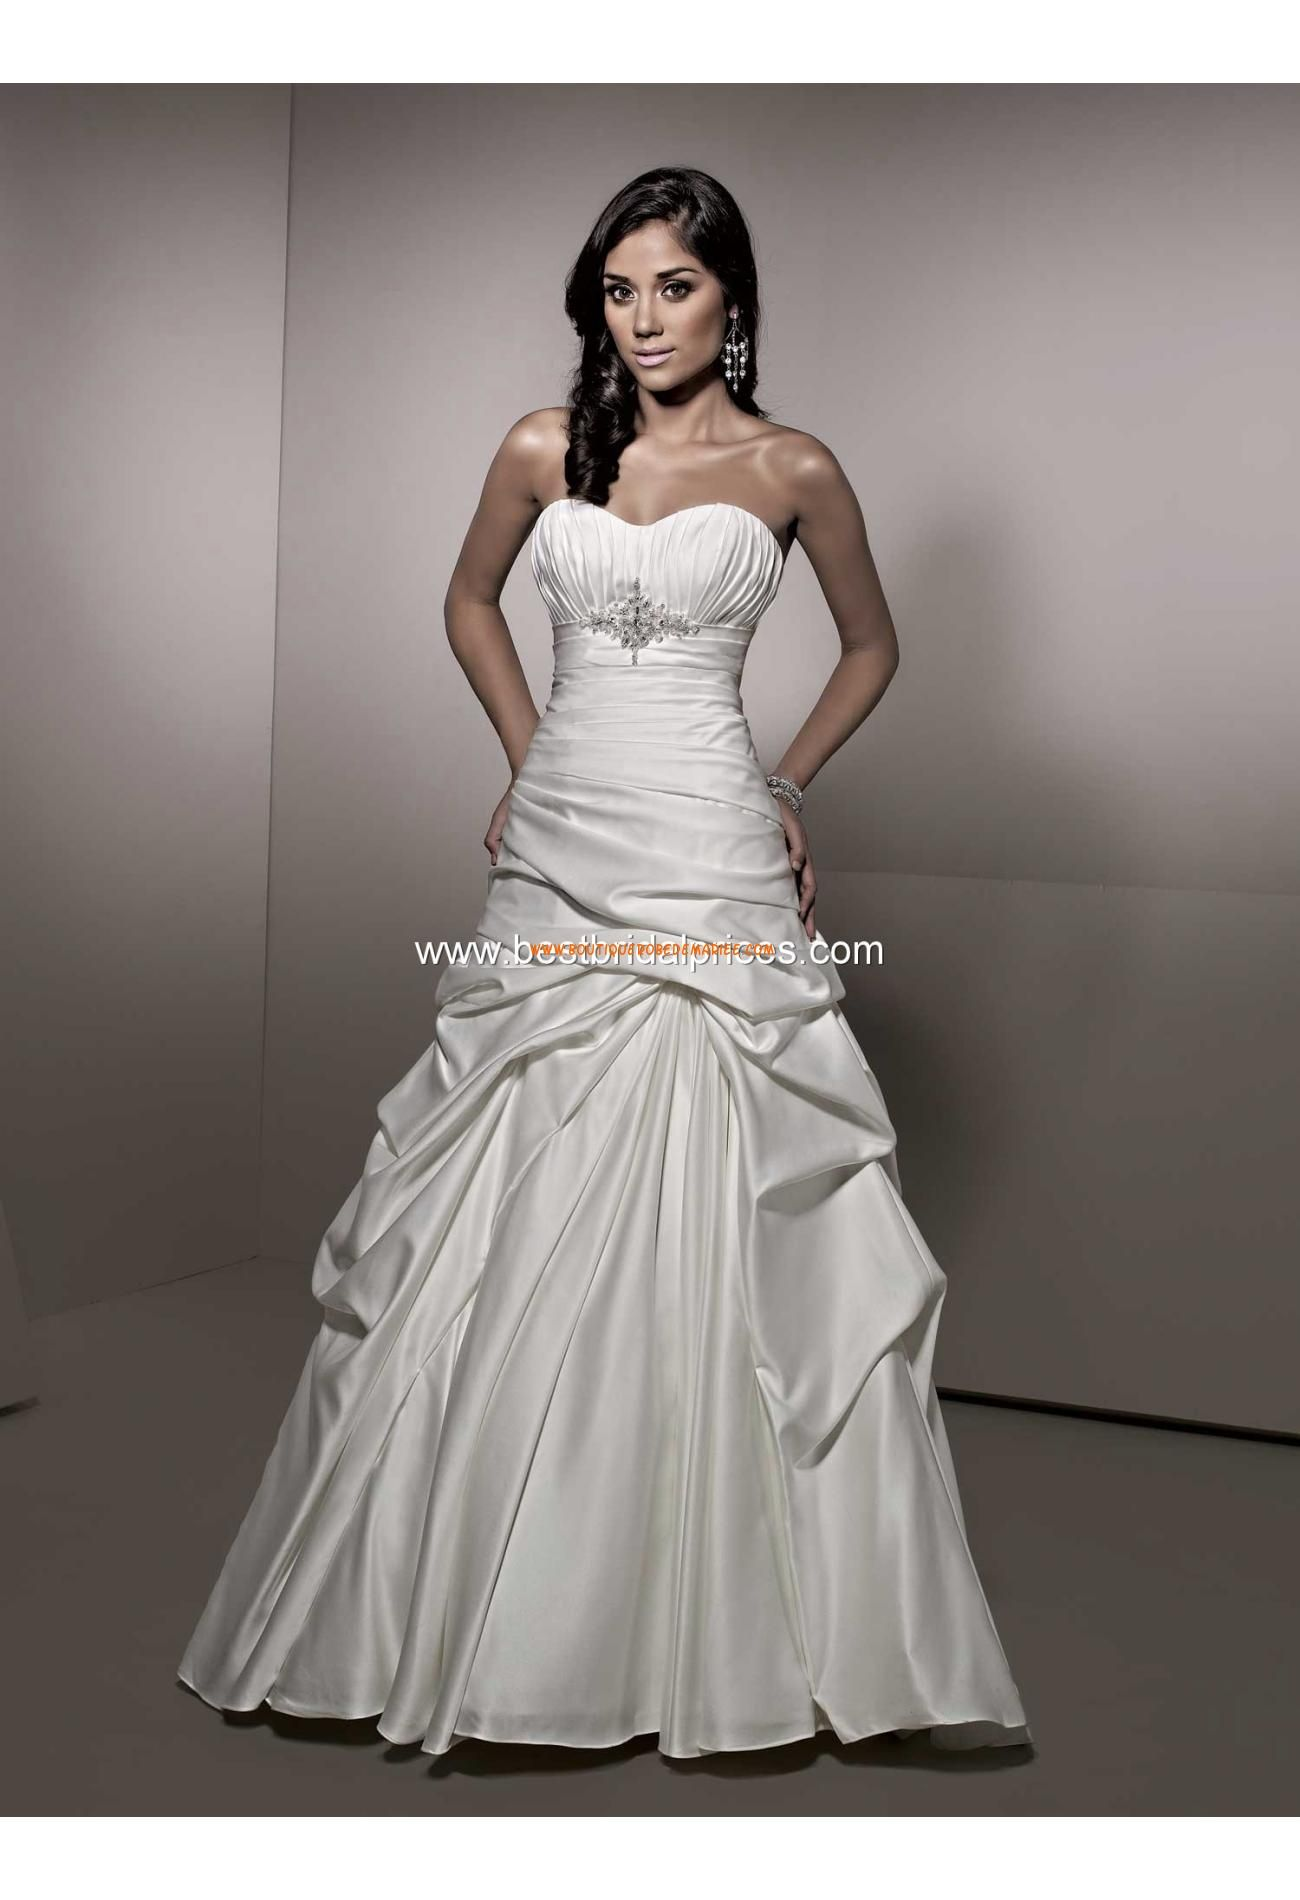 Robe de mariée originale satin col coeur taille empire wedding